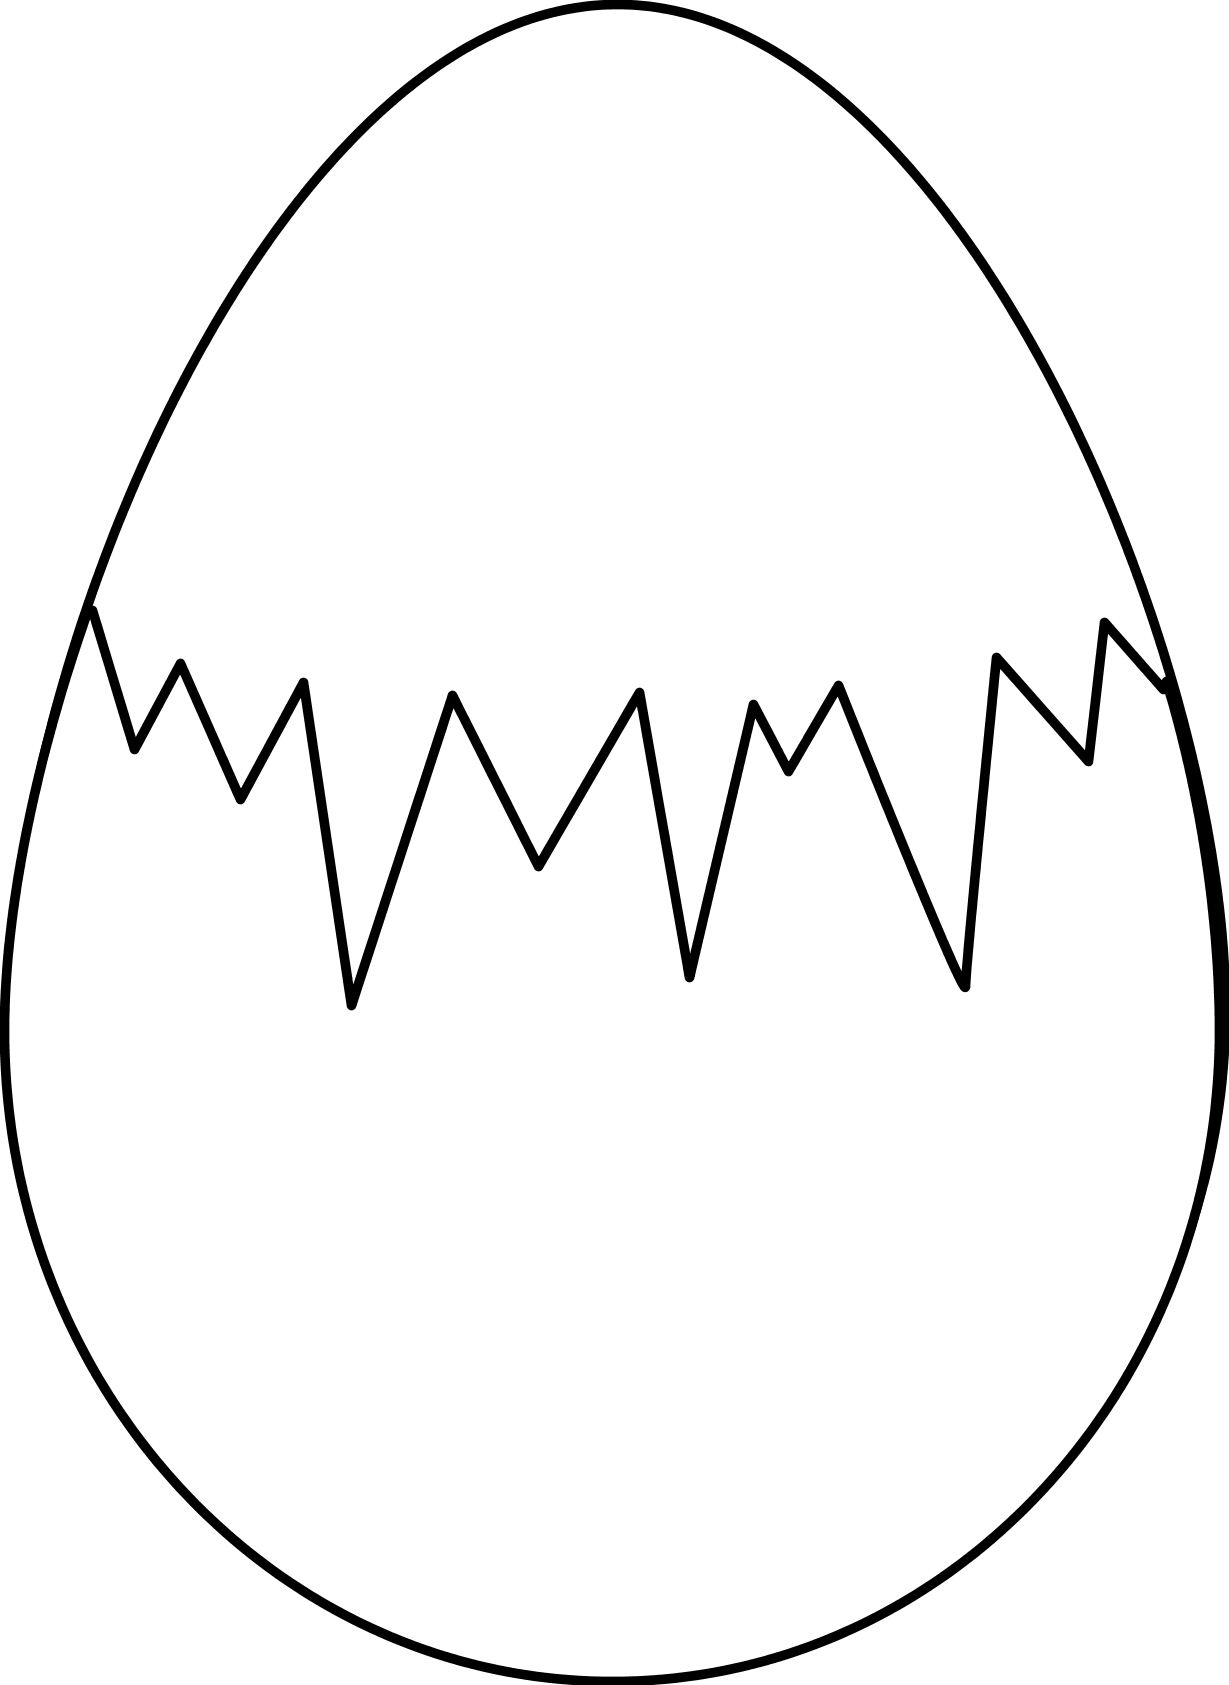 Drawing egg cracked. Injury clipart closed fracture